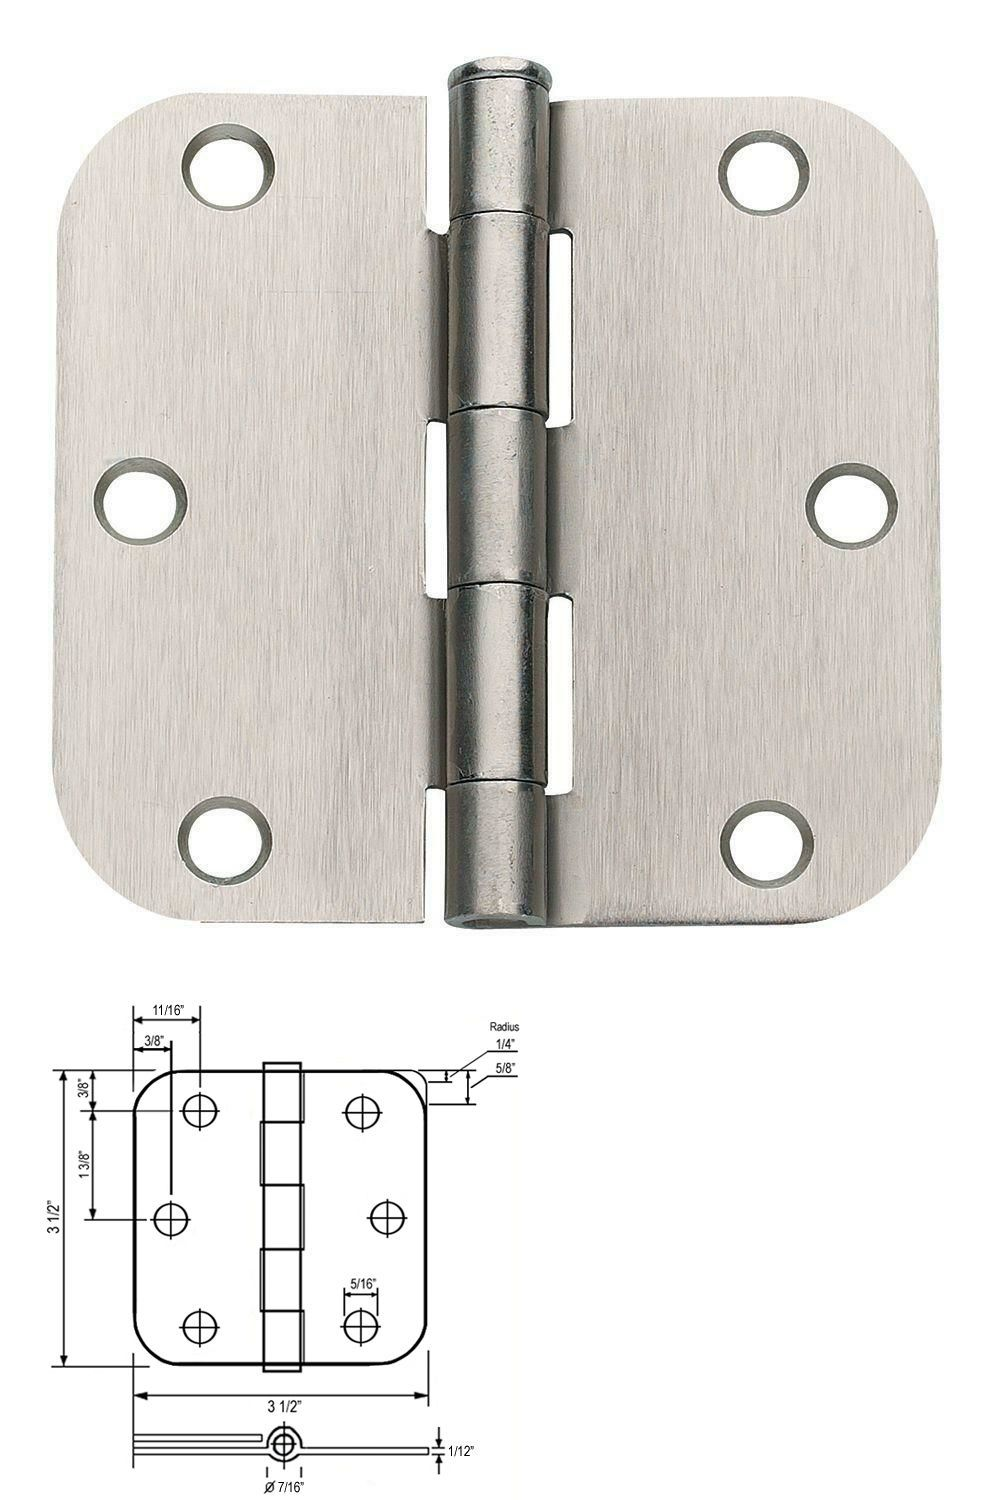 Lot Of 12 Satin Nickel 3 5 X 3 5 3 1 2 Door Hinges With 5 8 Radius Corners 769471792998 Ebay Door Hinges Hinges Interior Door Hinges